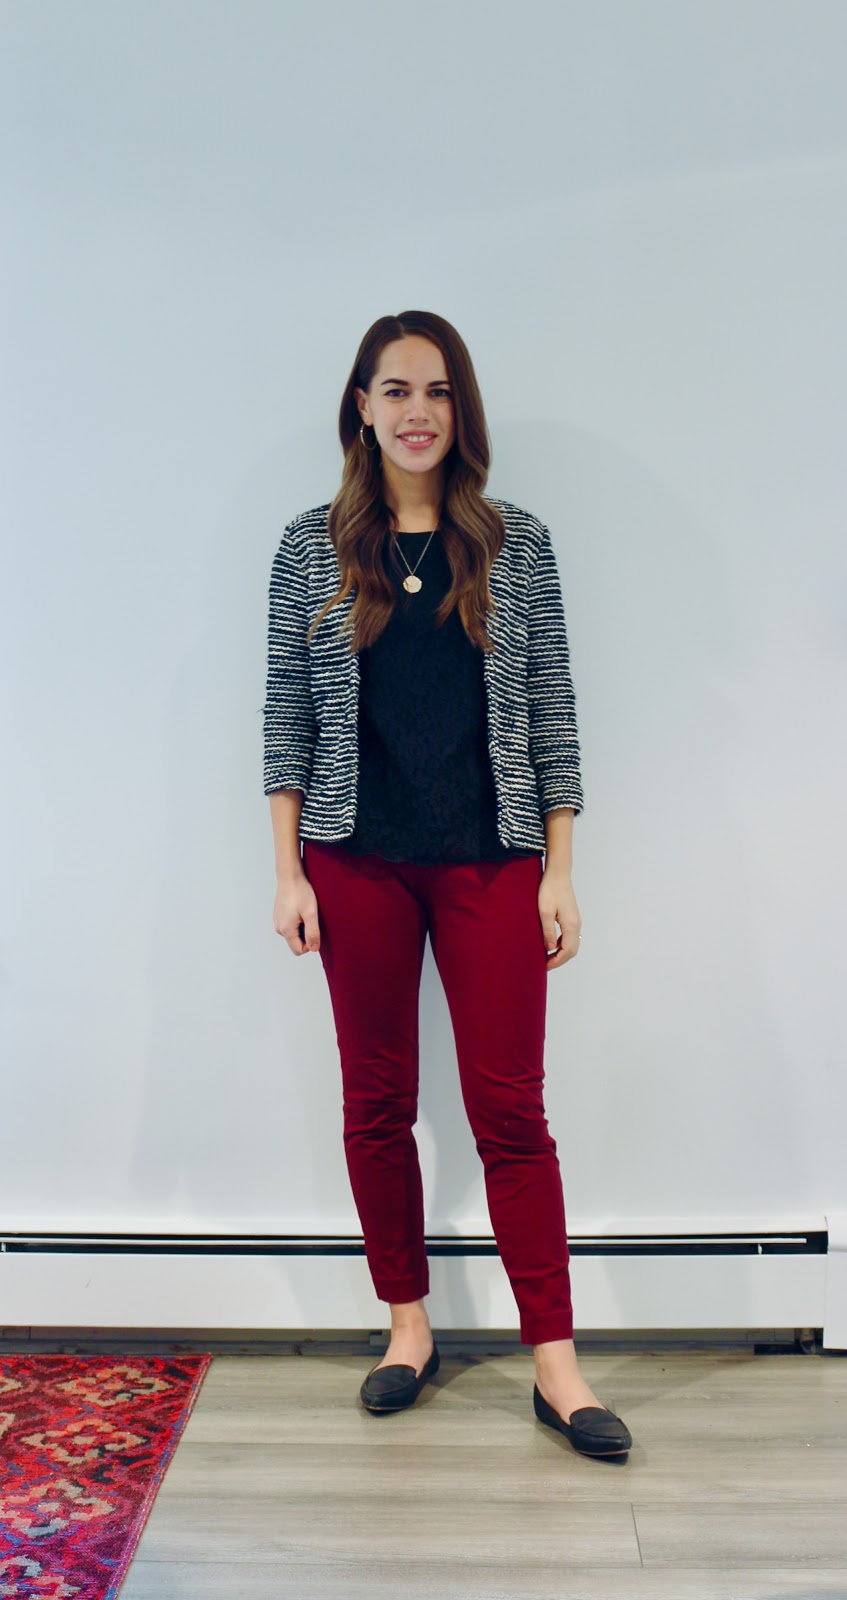 Jules in Flats - Striped Jacket & Burgundy Ankle Pants (Business Casual Fall Workwear on a Budget)